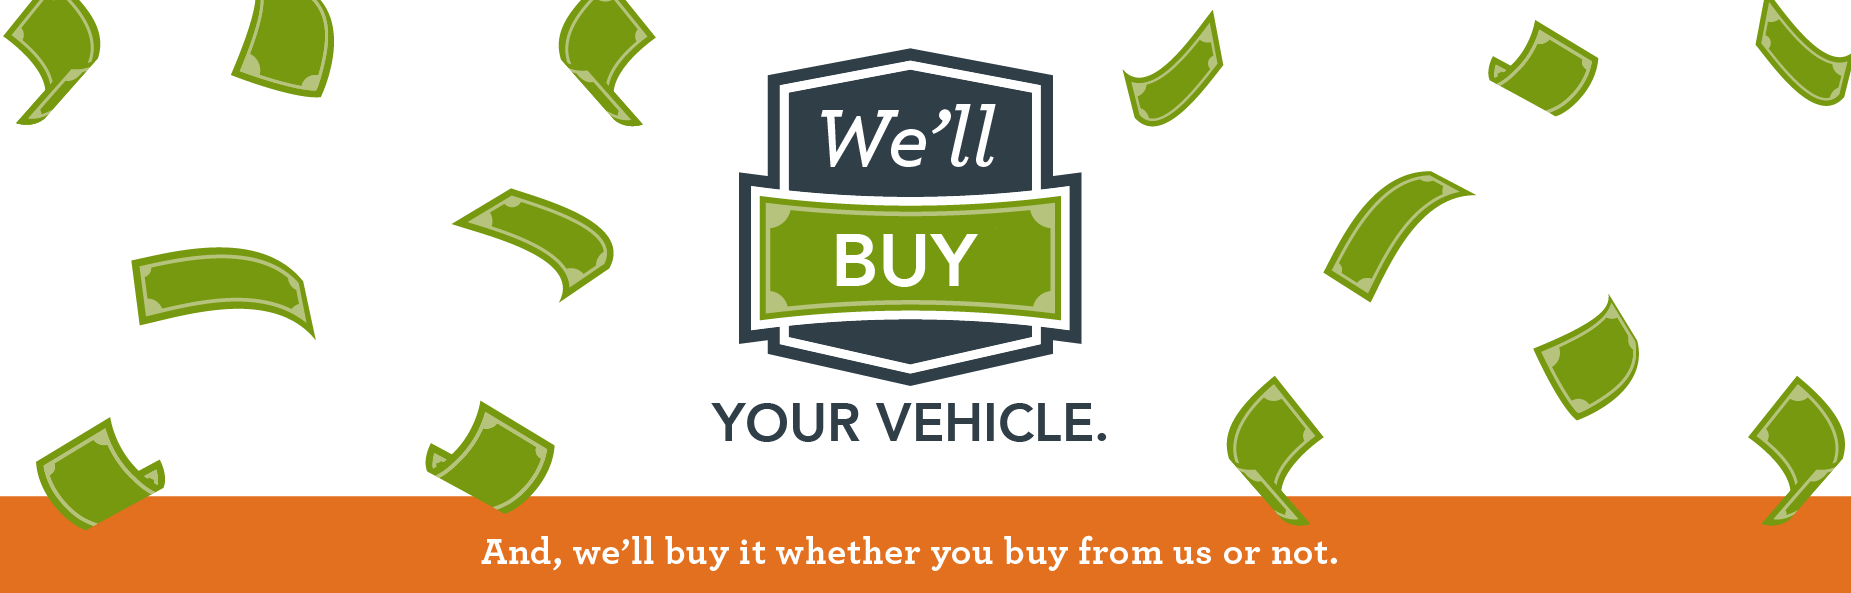 We'll Buy Your Vehicle